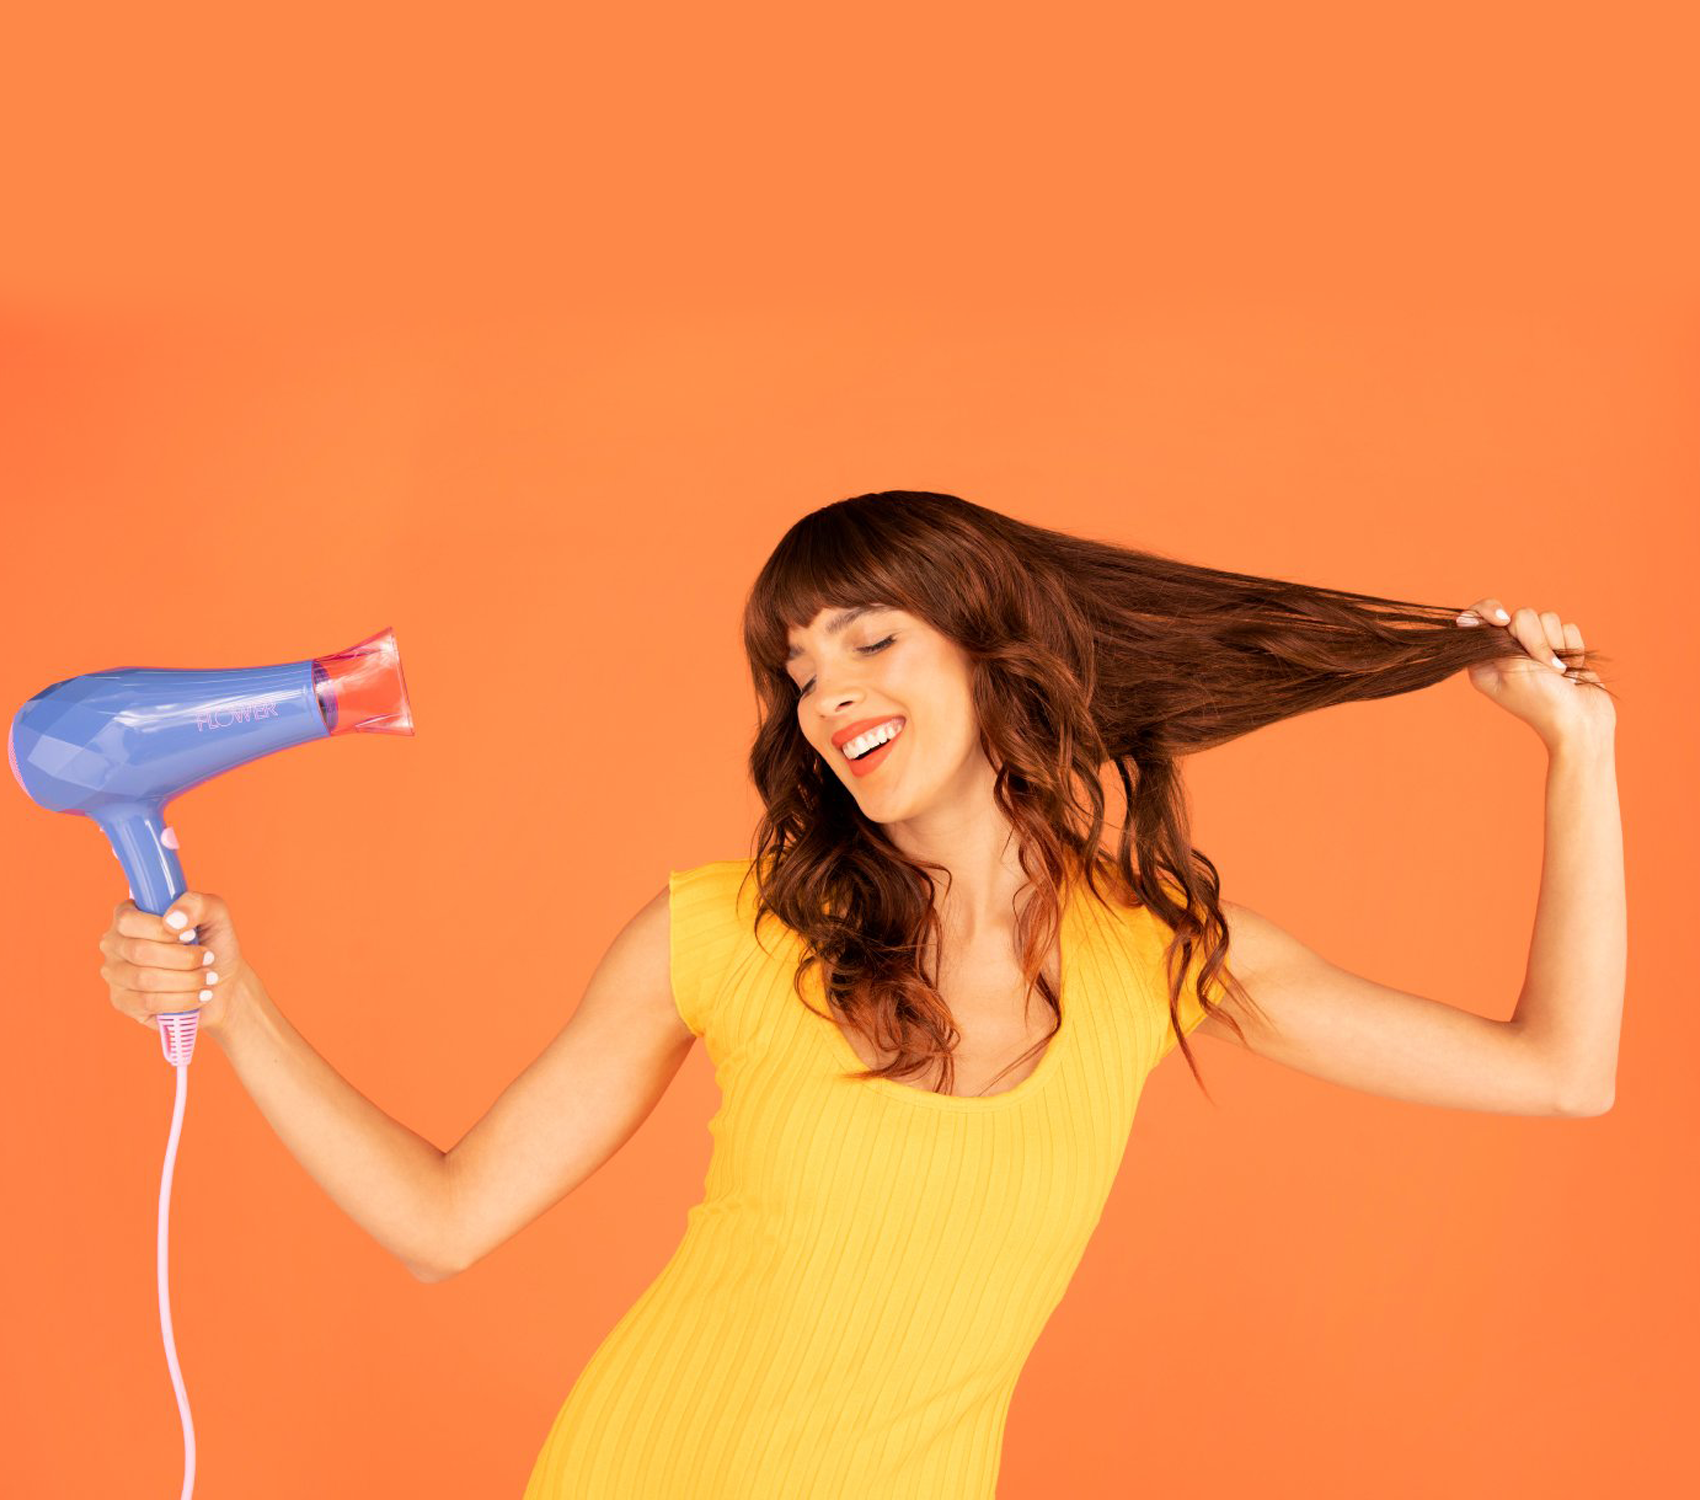 Woman blow drying her outstretched hair